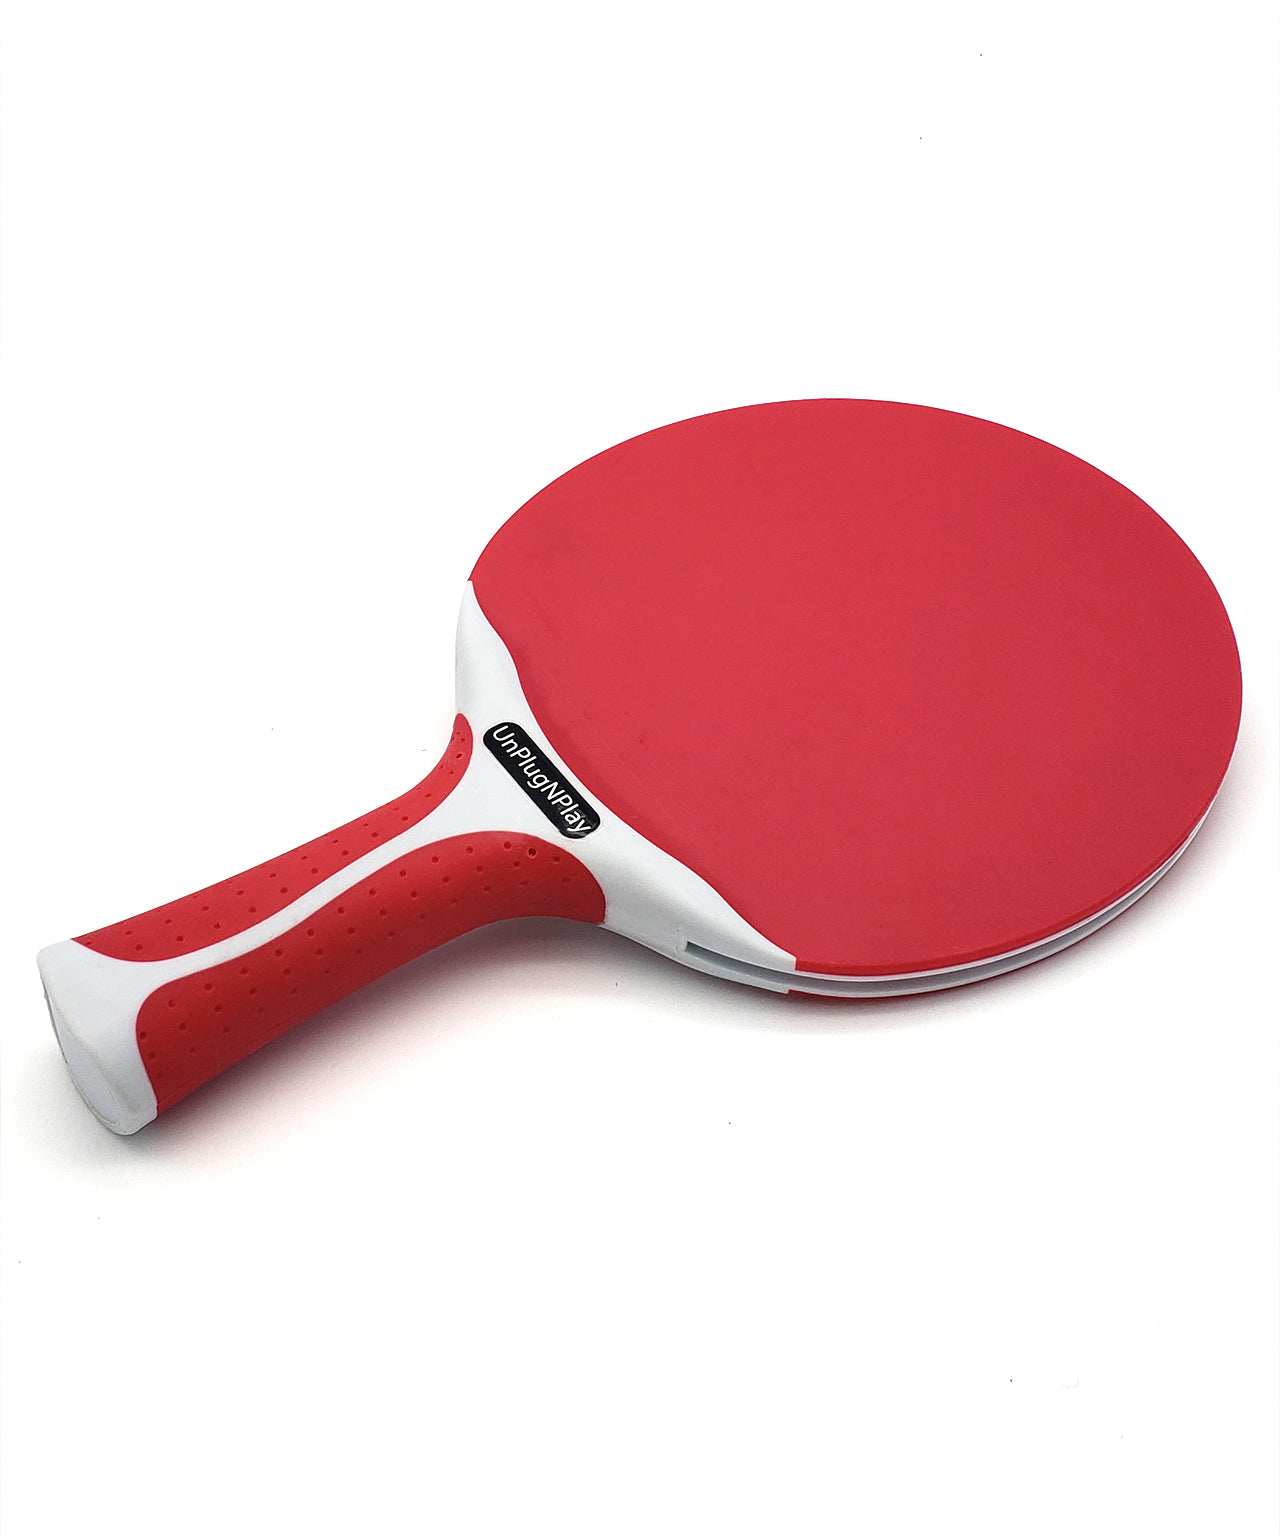 Killerspin Outdoor Ping Pong Paddle Canvas Swirl Red - UnPlugNPlay